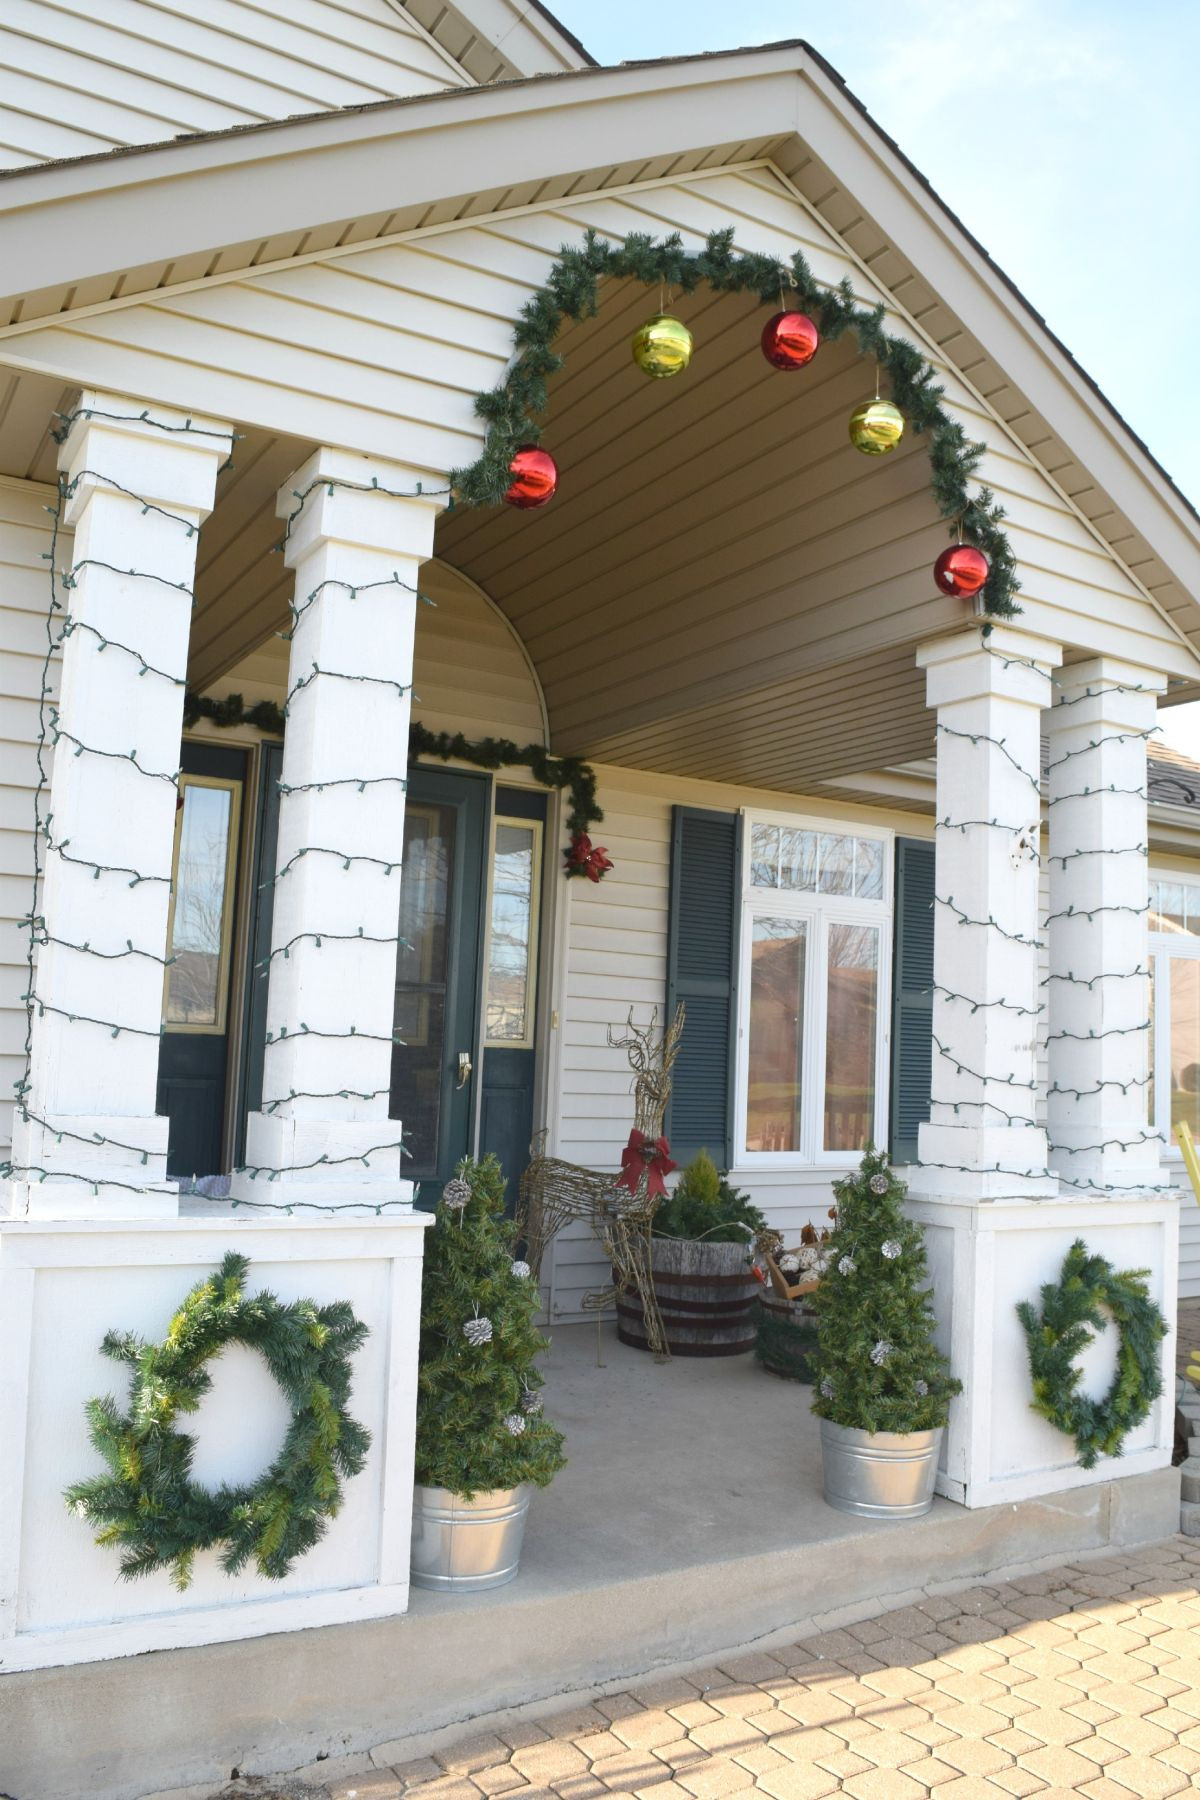 Best ideas about DIY Front Porch . Save or Pin Fashion a DIY Christmas Topiary From A Basic Tomato Cage Now.